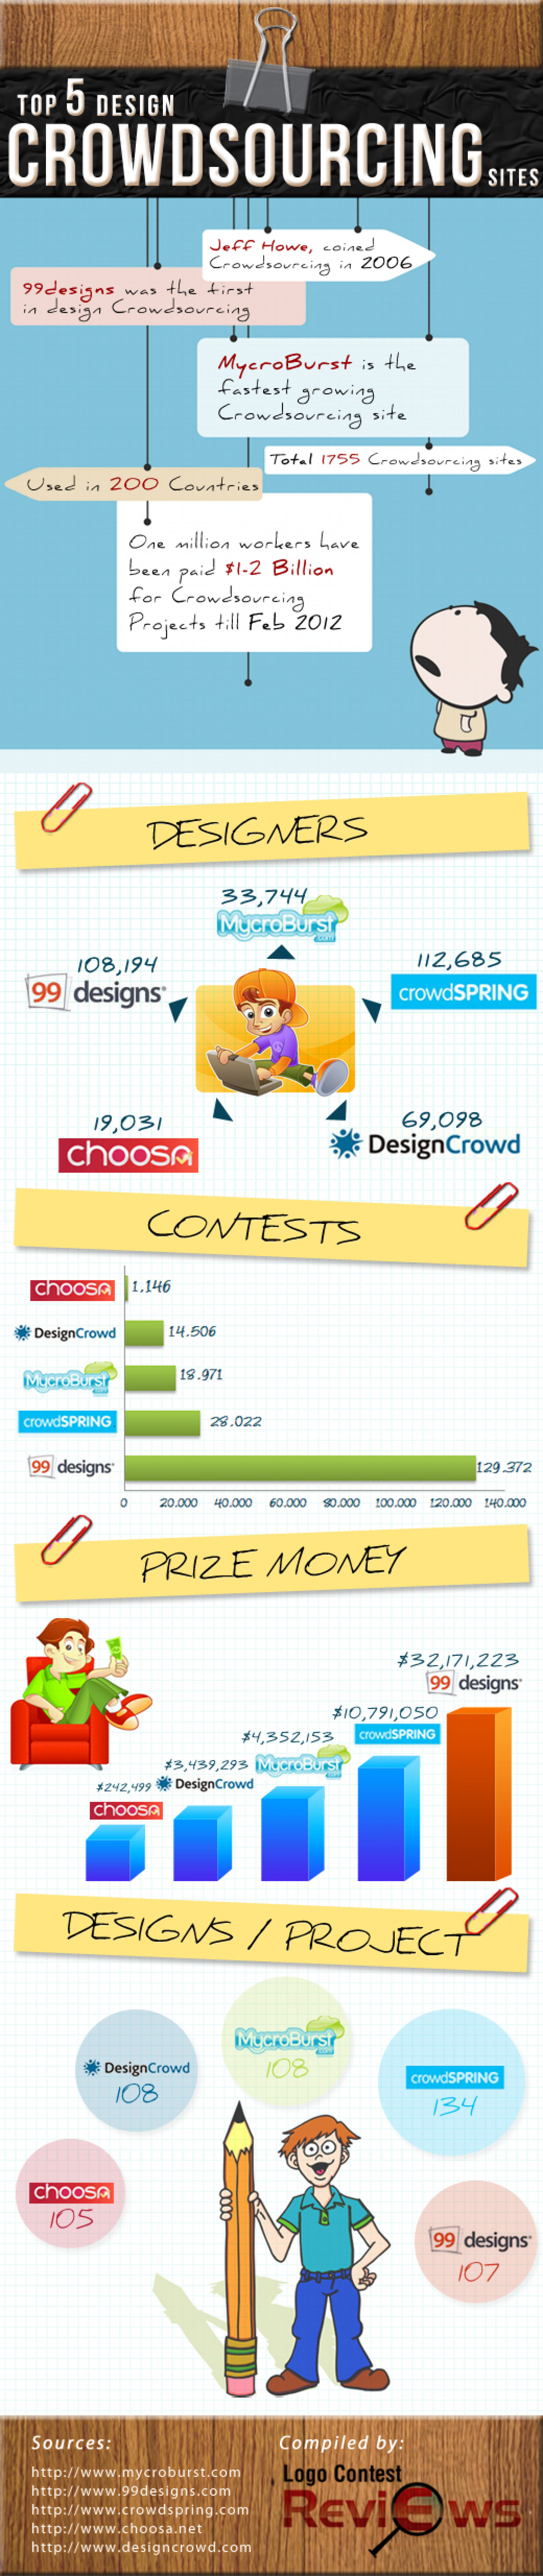 First Infographic on Top 5 Design Crowdsourcing Sites  Infographic